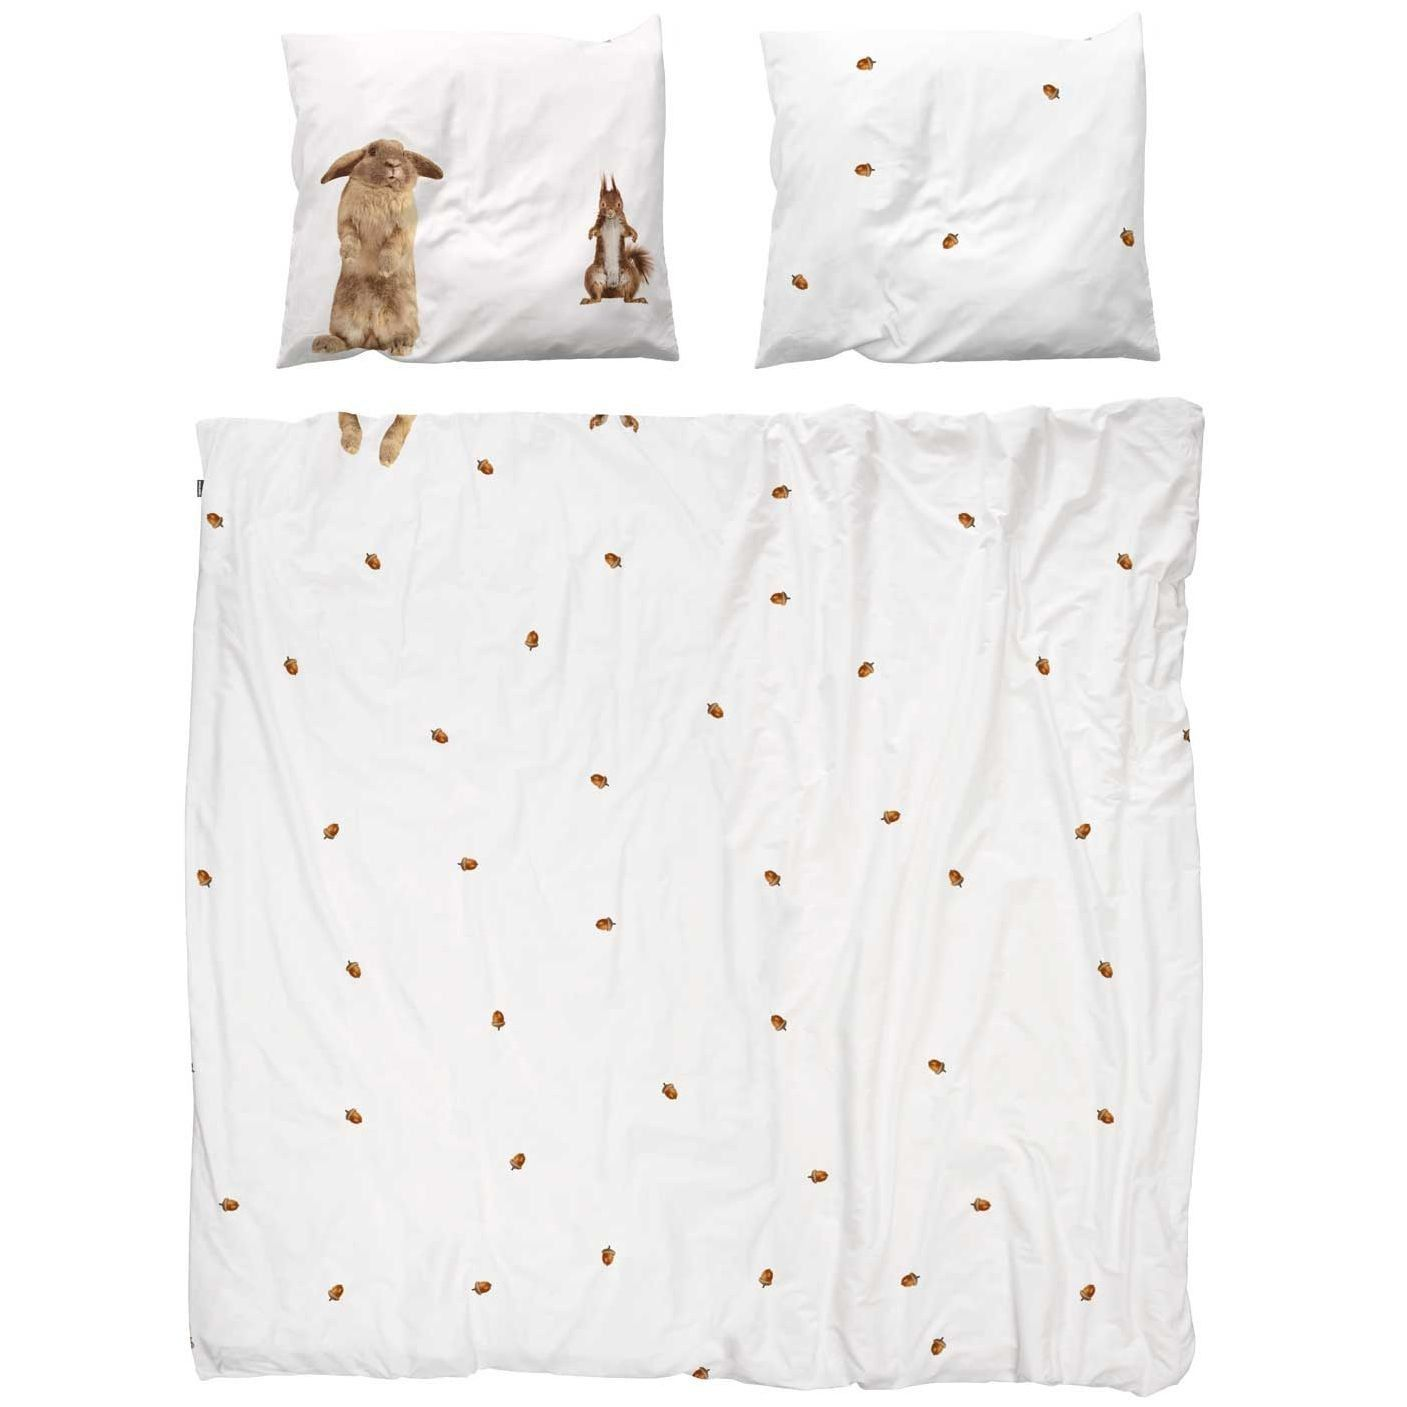 Snurk Outlet Furry Friends Flanel dekbedovertrek 240x200